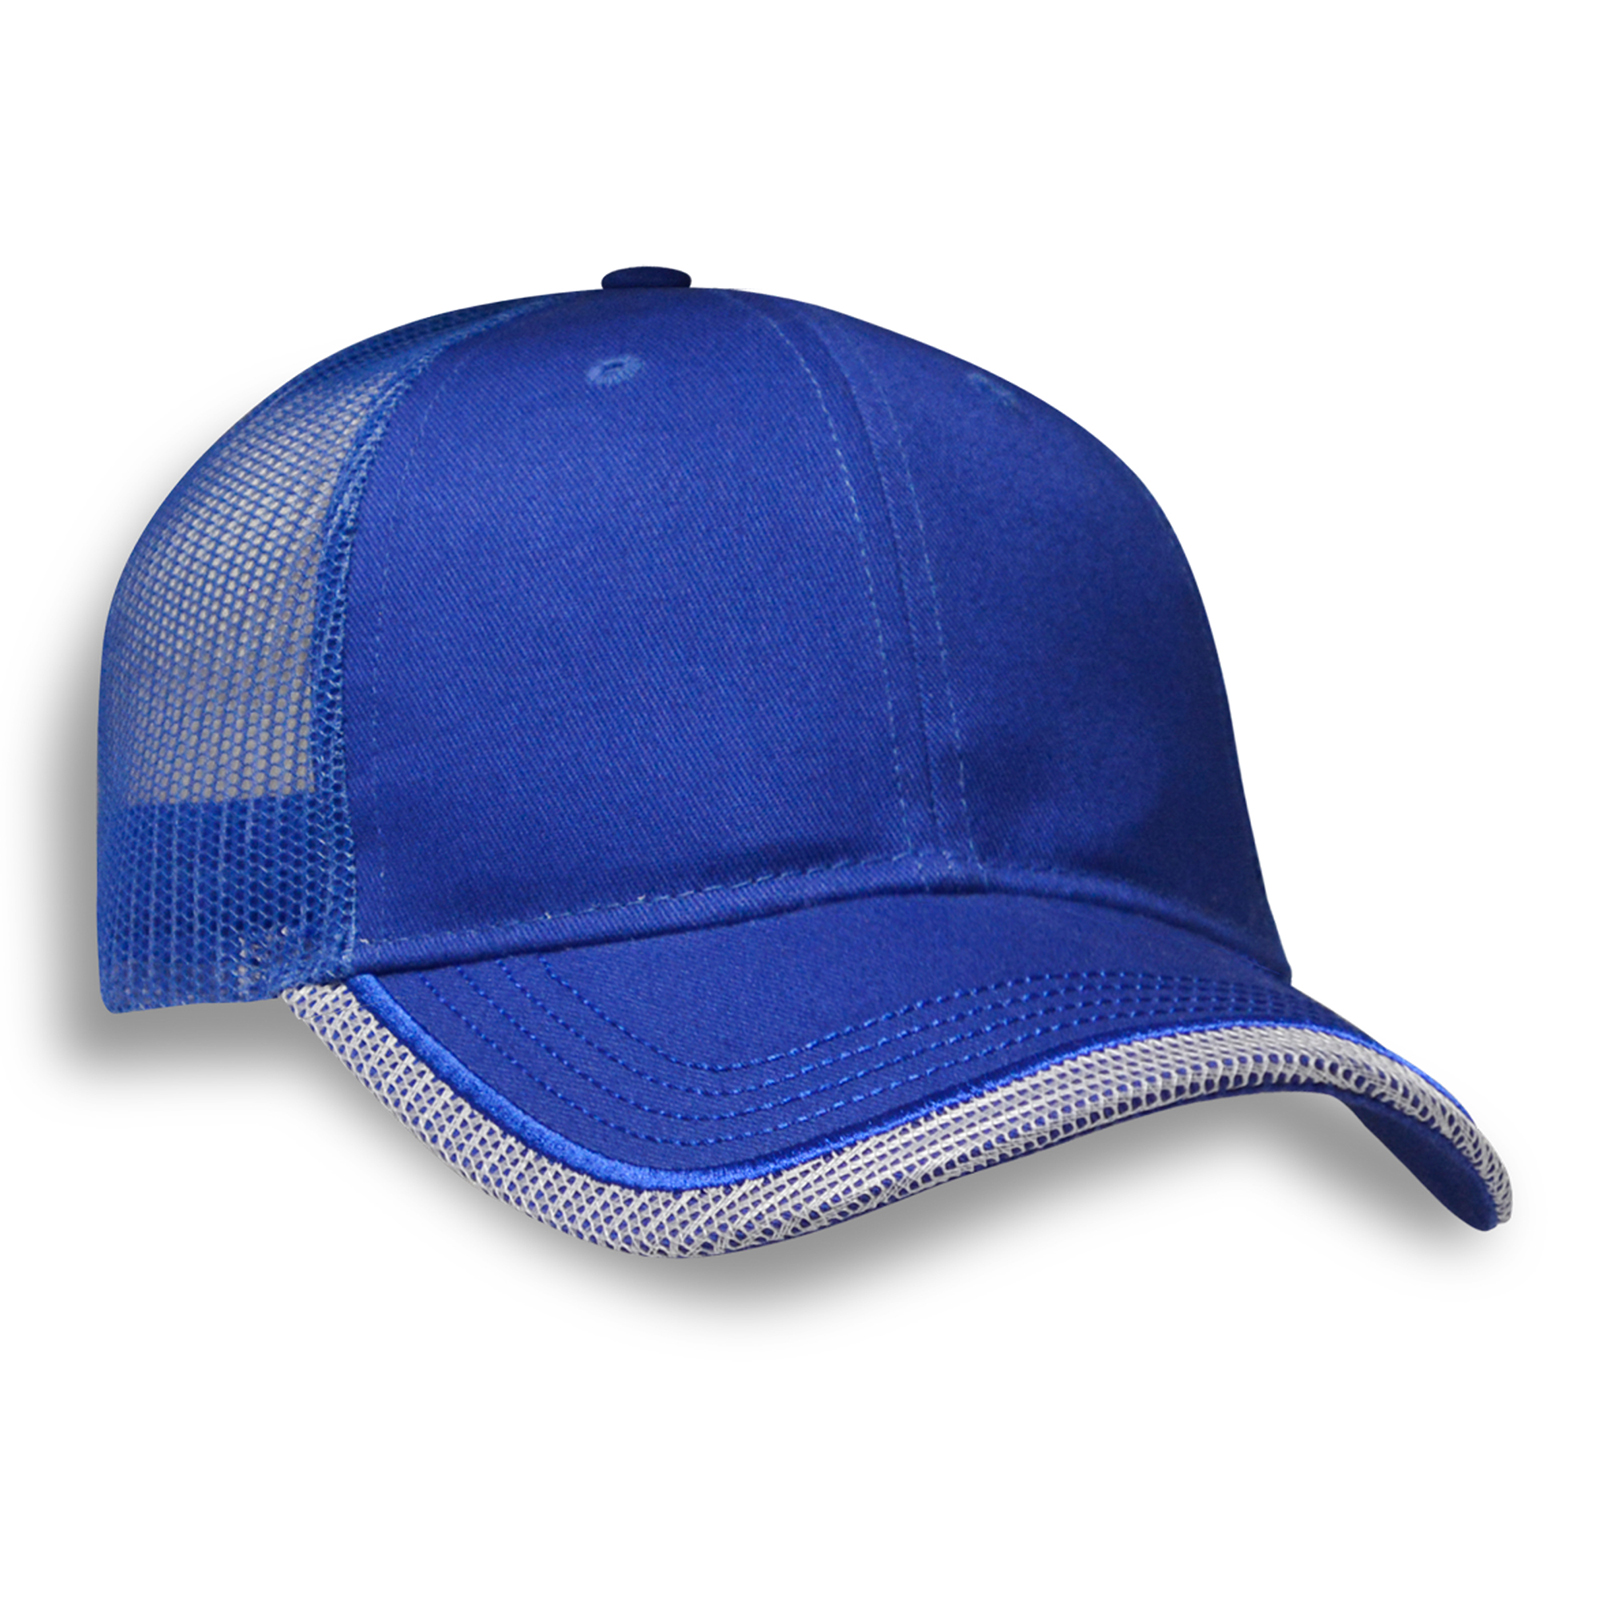 b6d751dc1b6 Structured Pct Cap with Mesh Binding and Embroidery Line on Peak